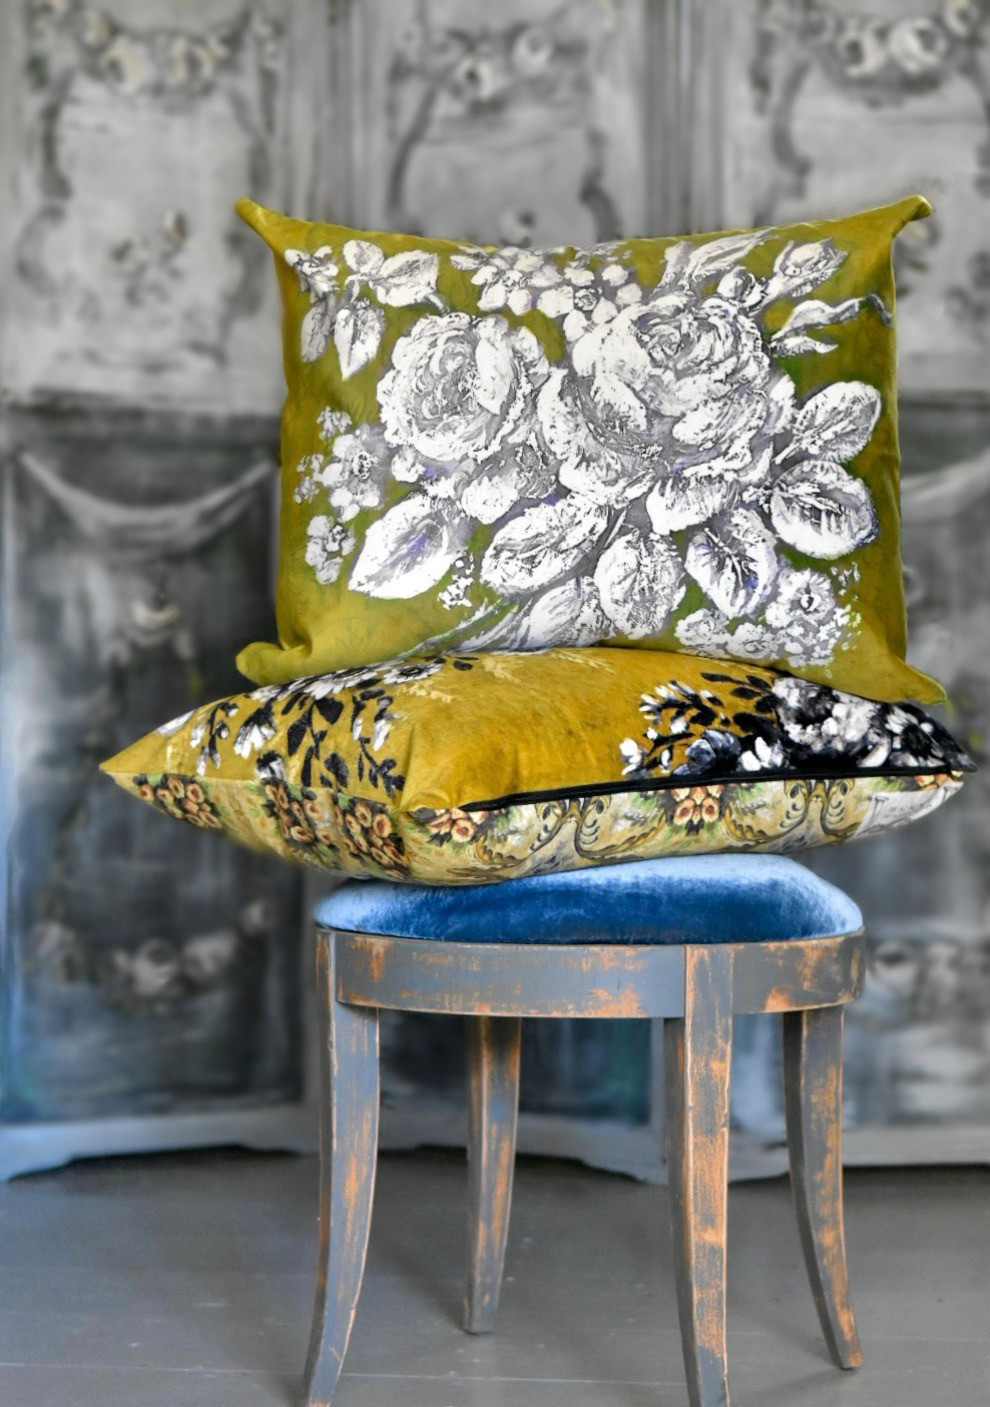 Velveteen pillows by artist Jennifer Lanne for Decorum